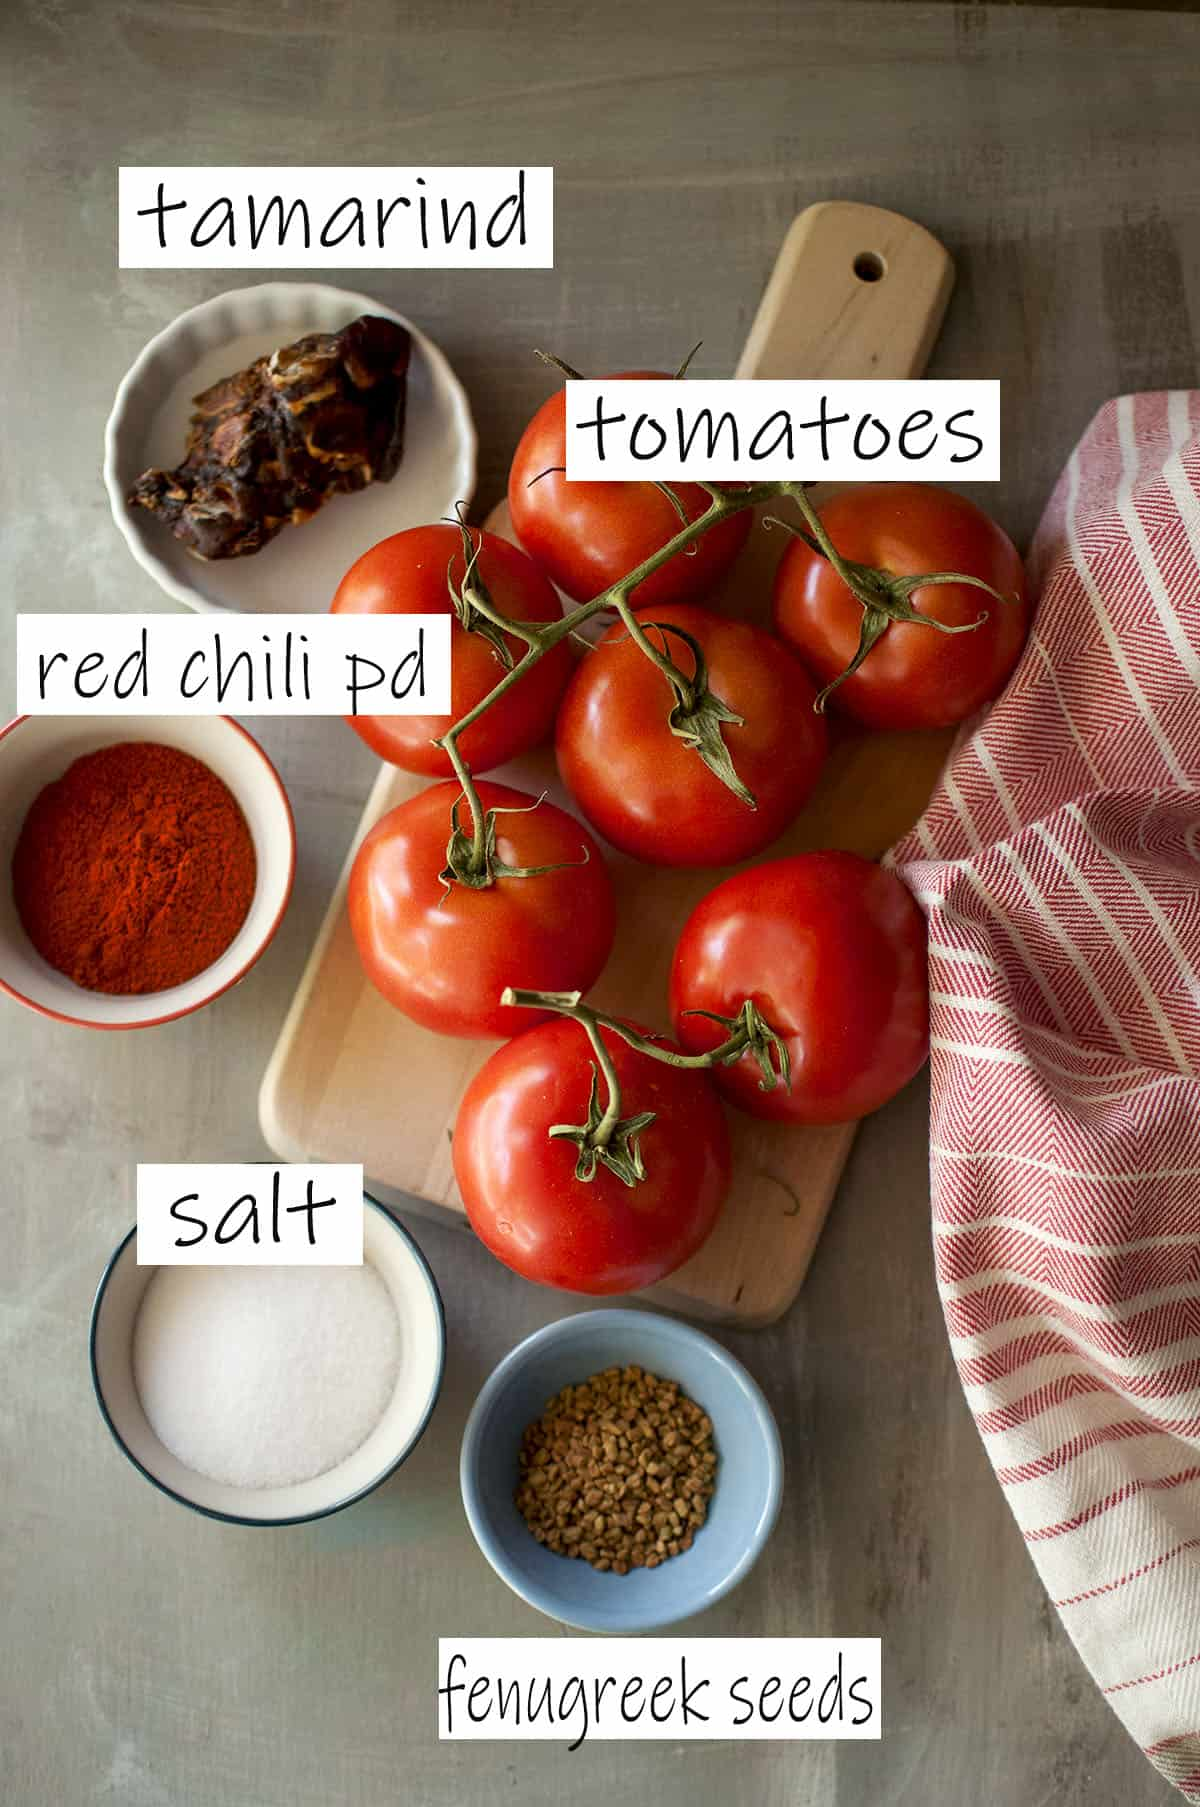 Ingredients required to make the spicy concentrate